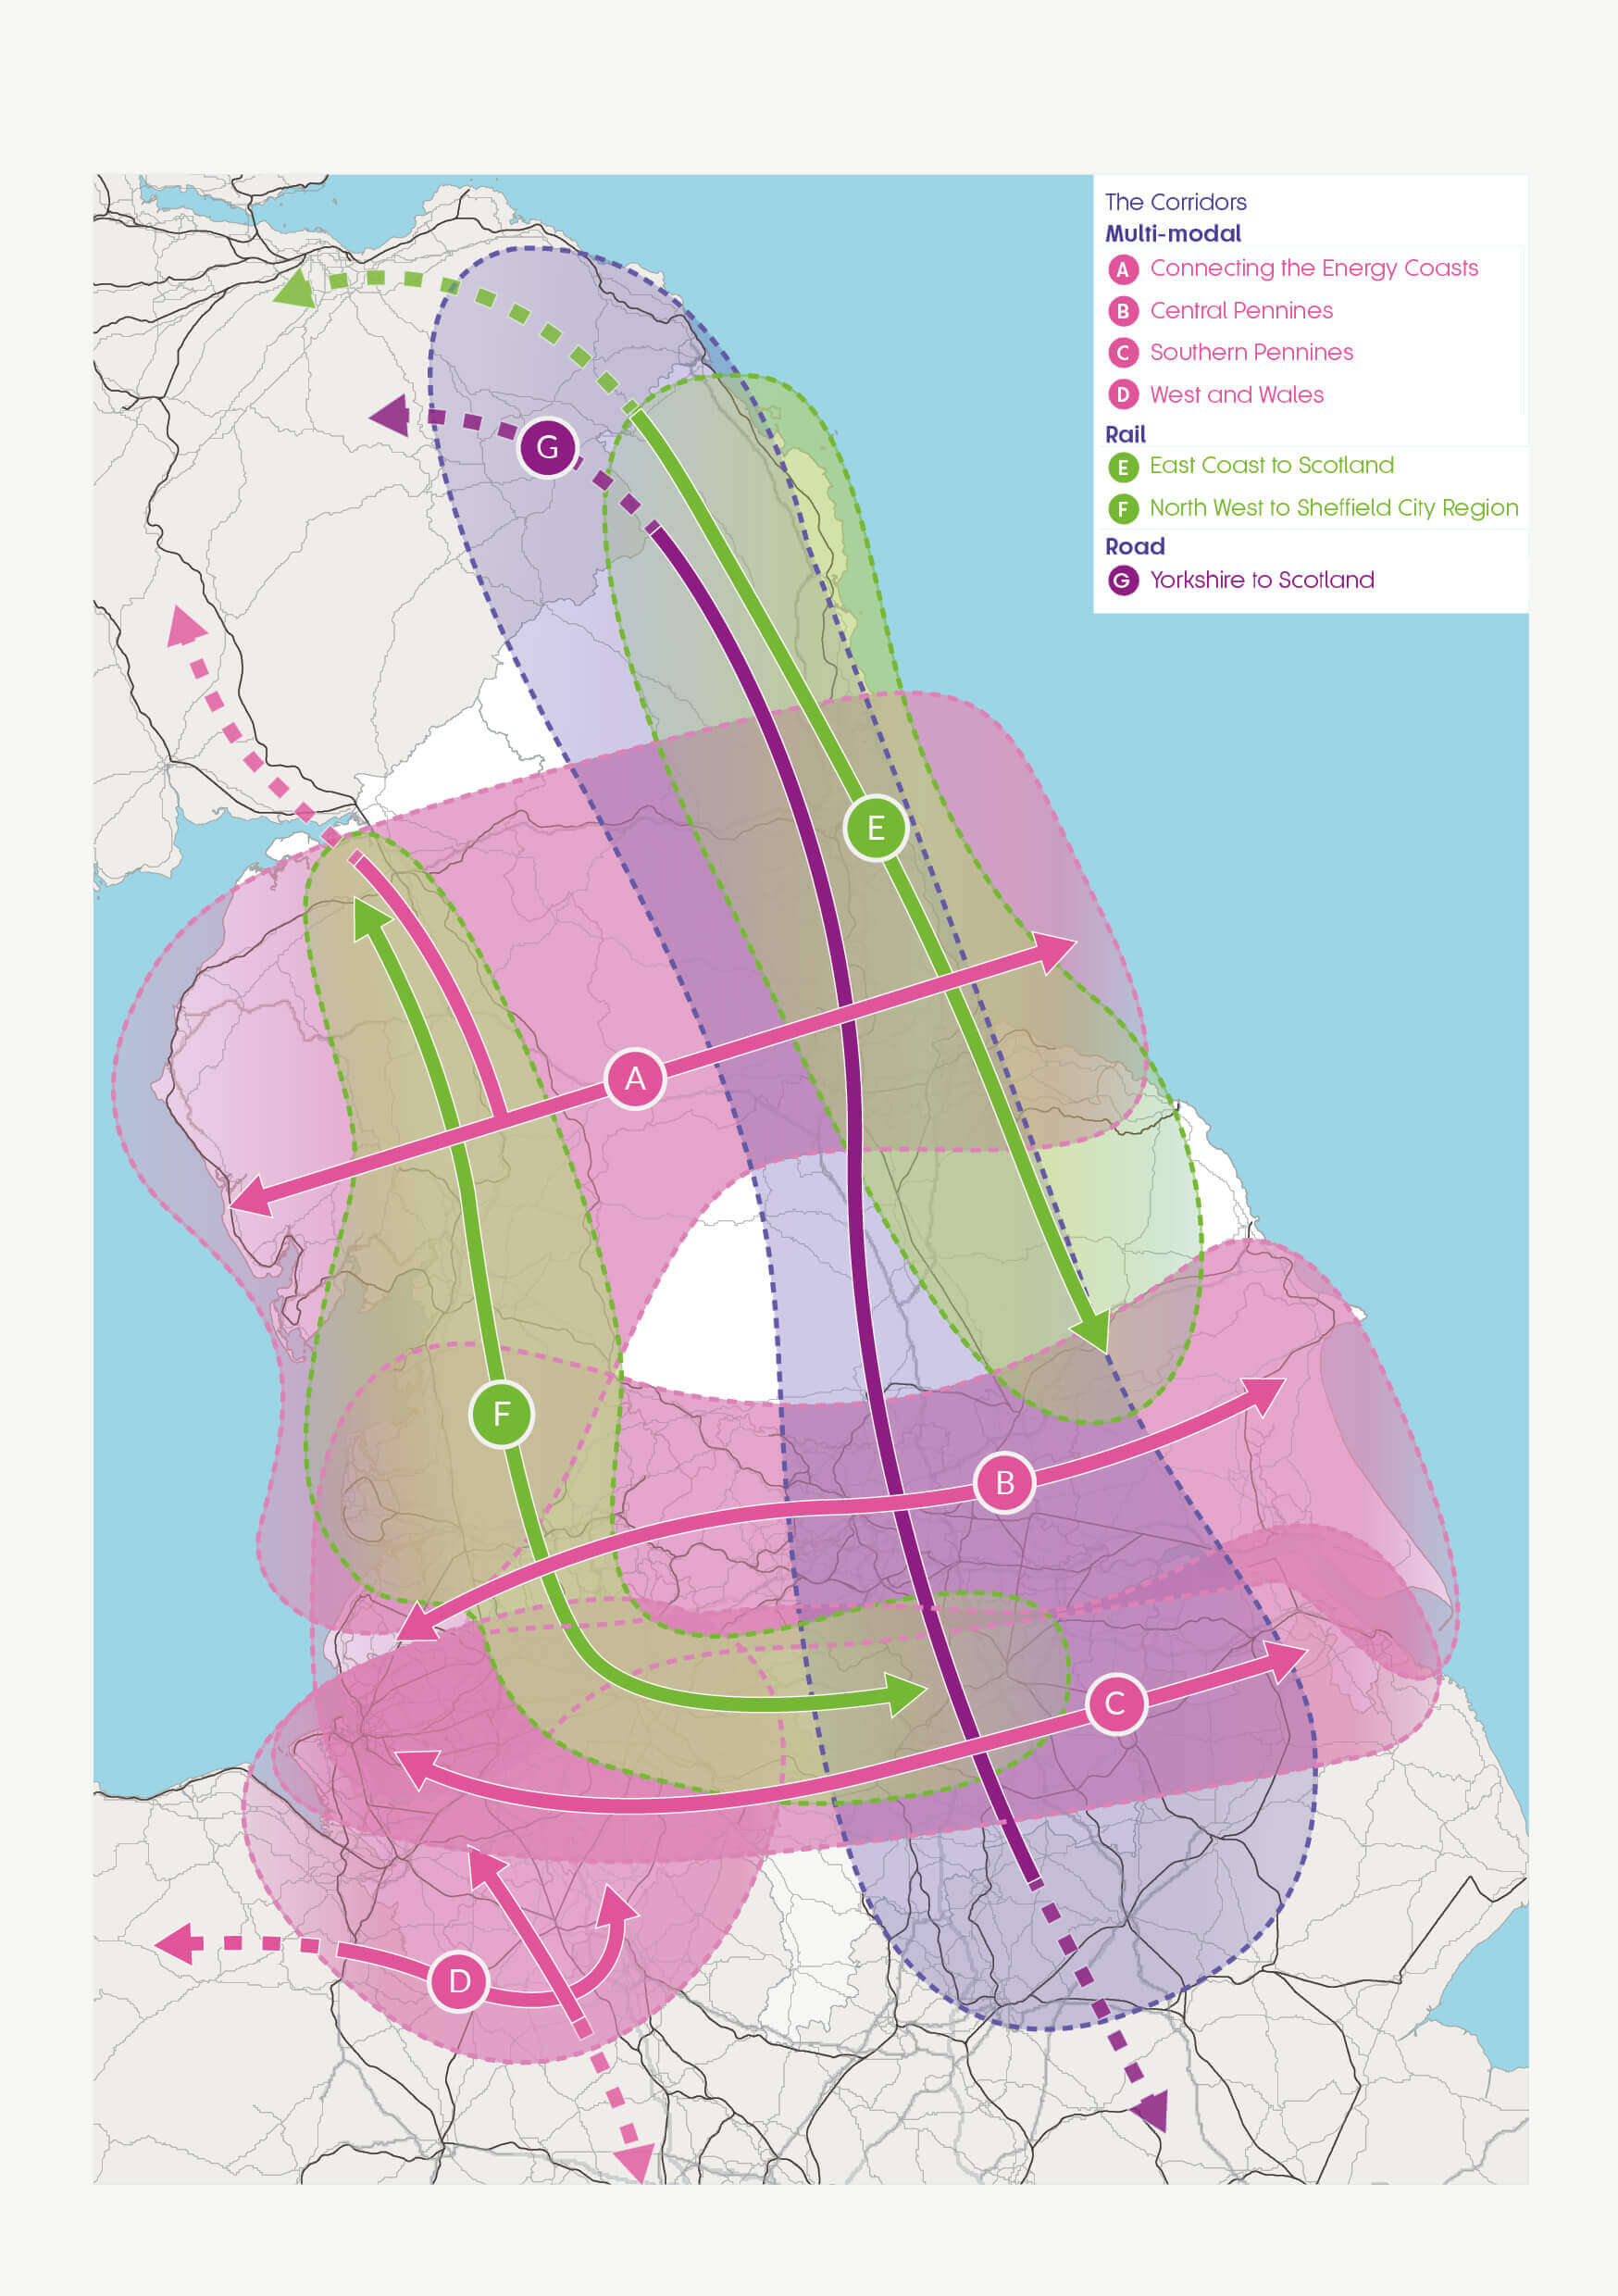 TfN separate consultation on Strategic Developments Corridors